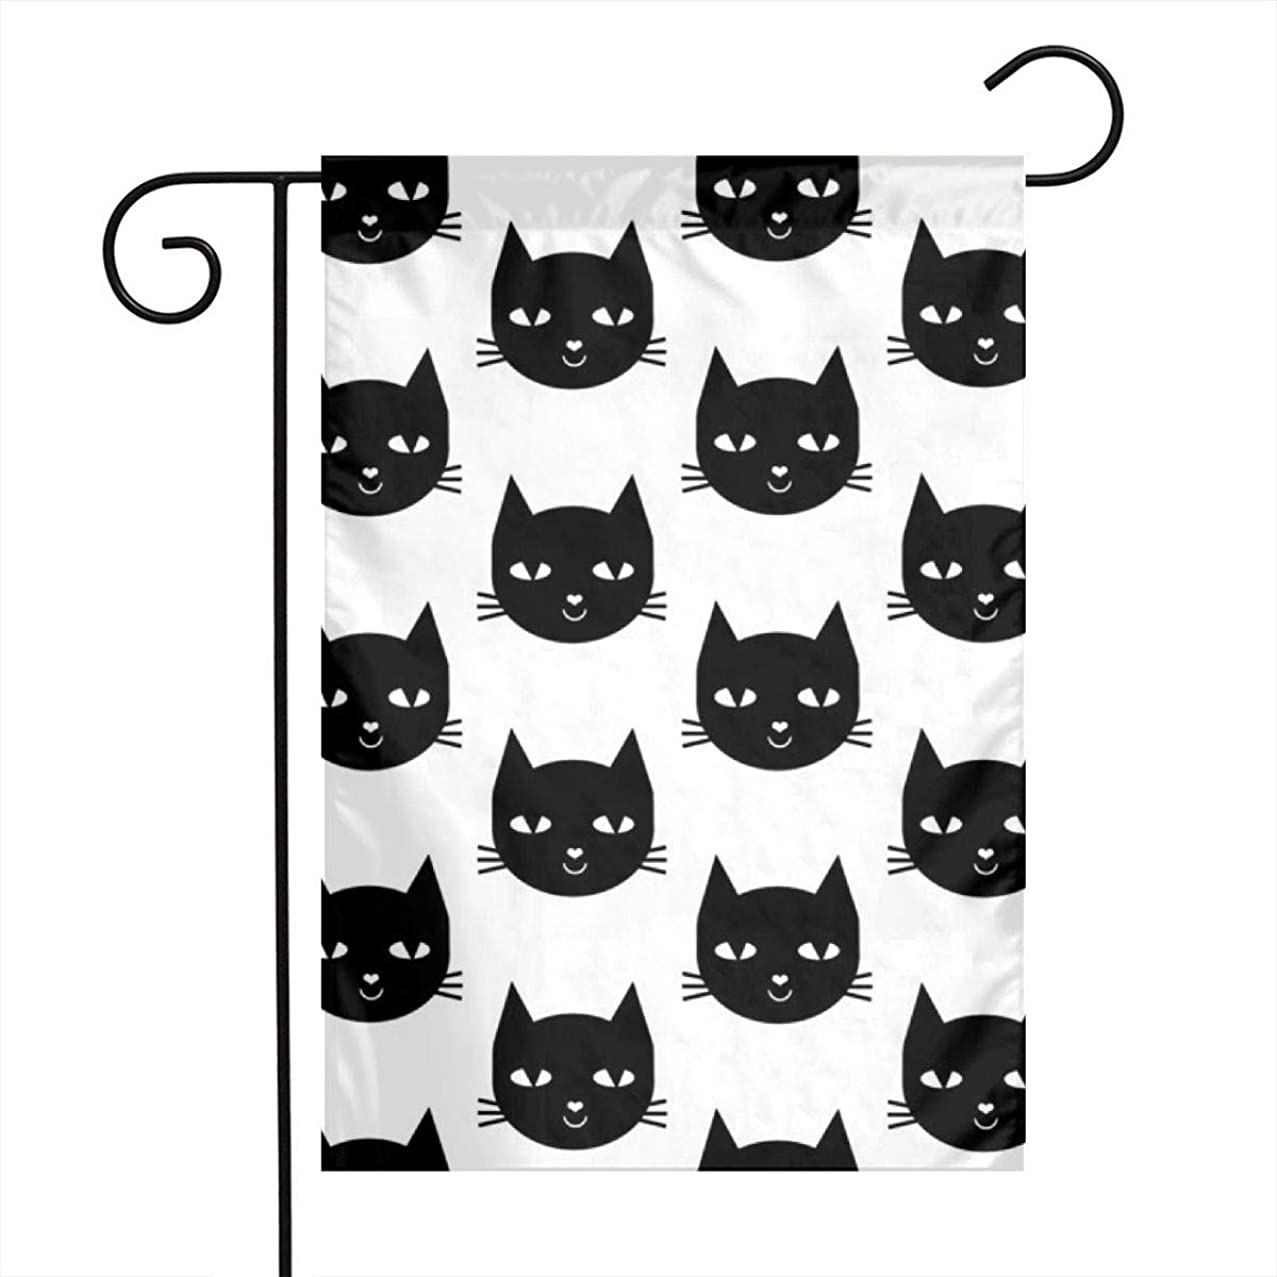 AndrewTop Home Garden Flag Cat Black Vertical Double Sided Spring Summer Yard Outdoor Decorative 12 x 18 Inch